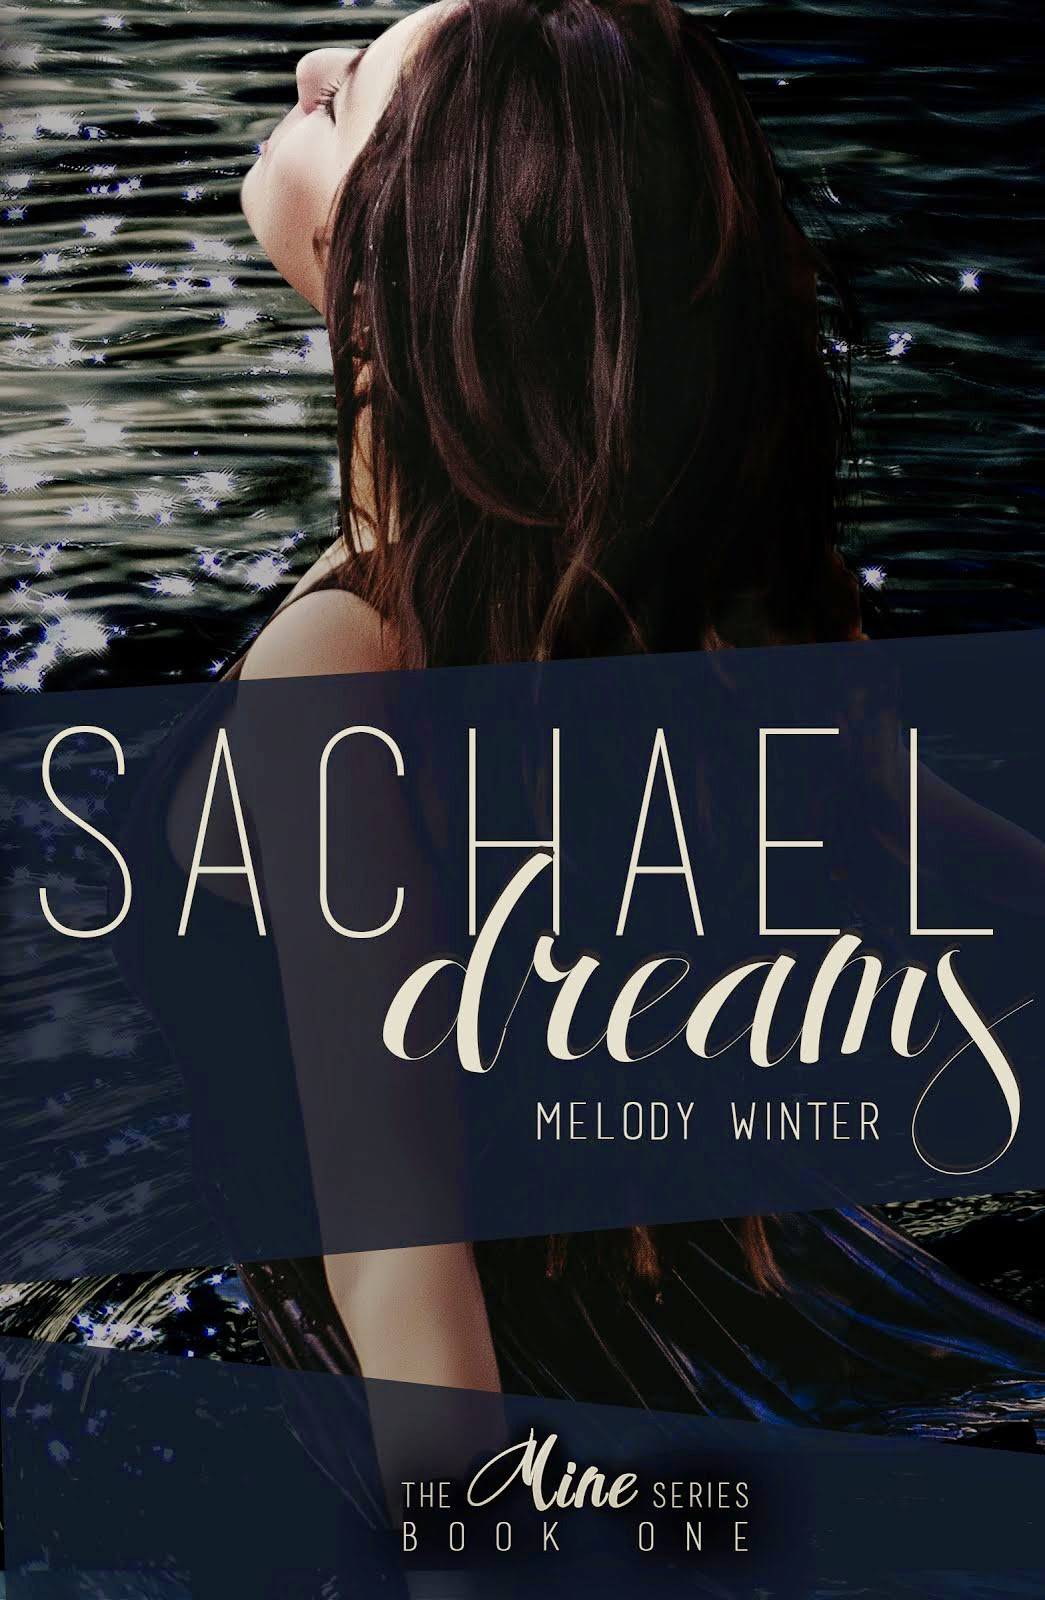 Buy Sachael Dreams